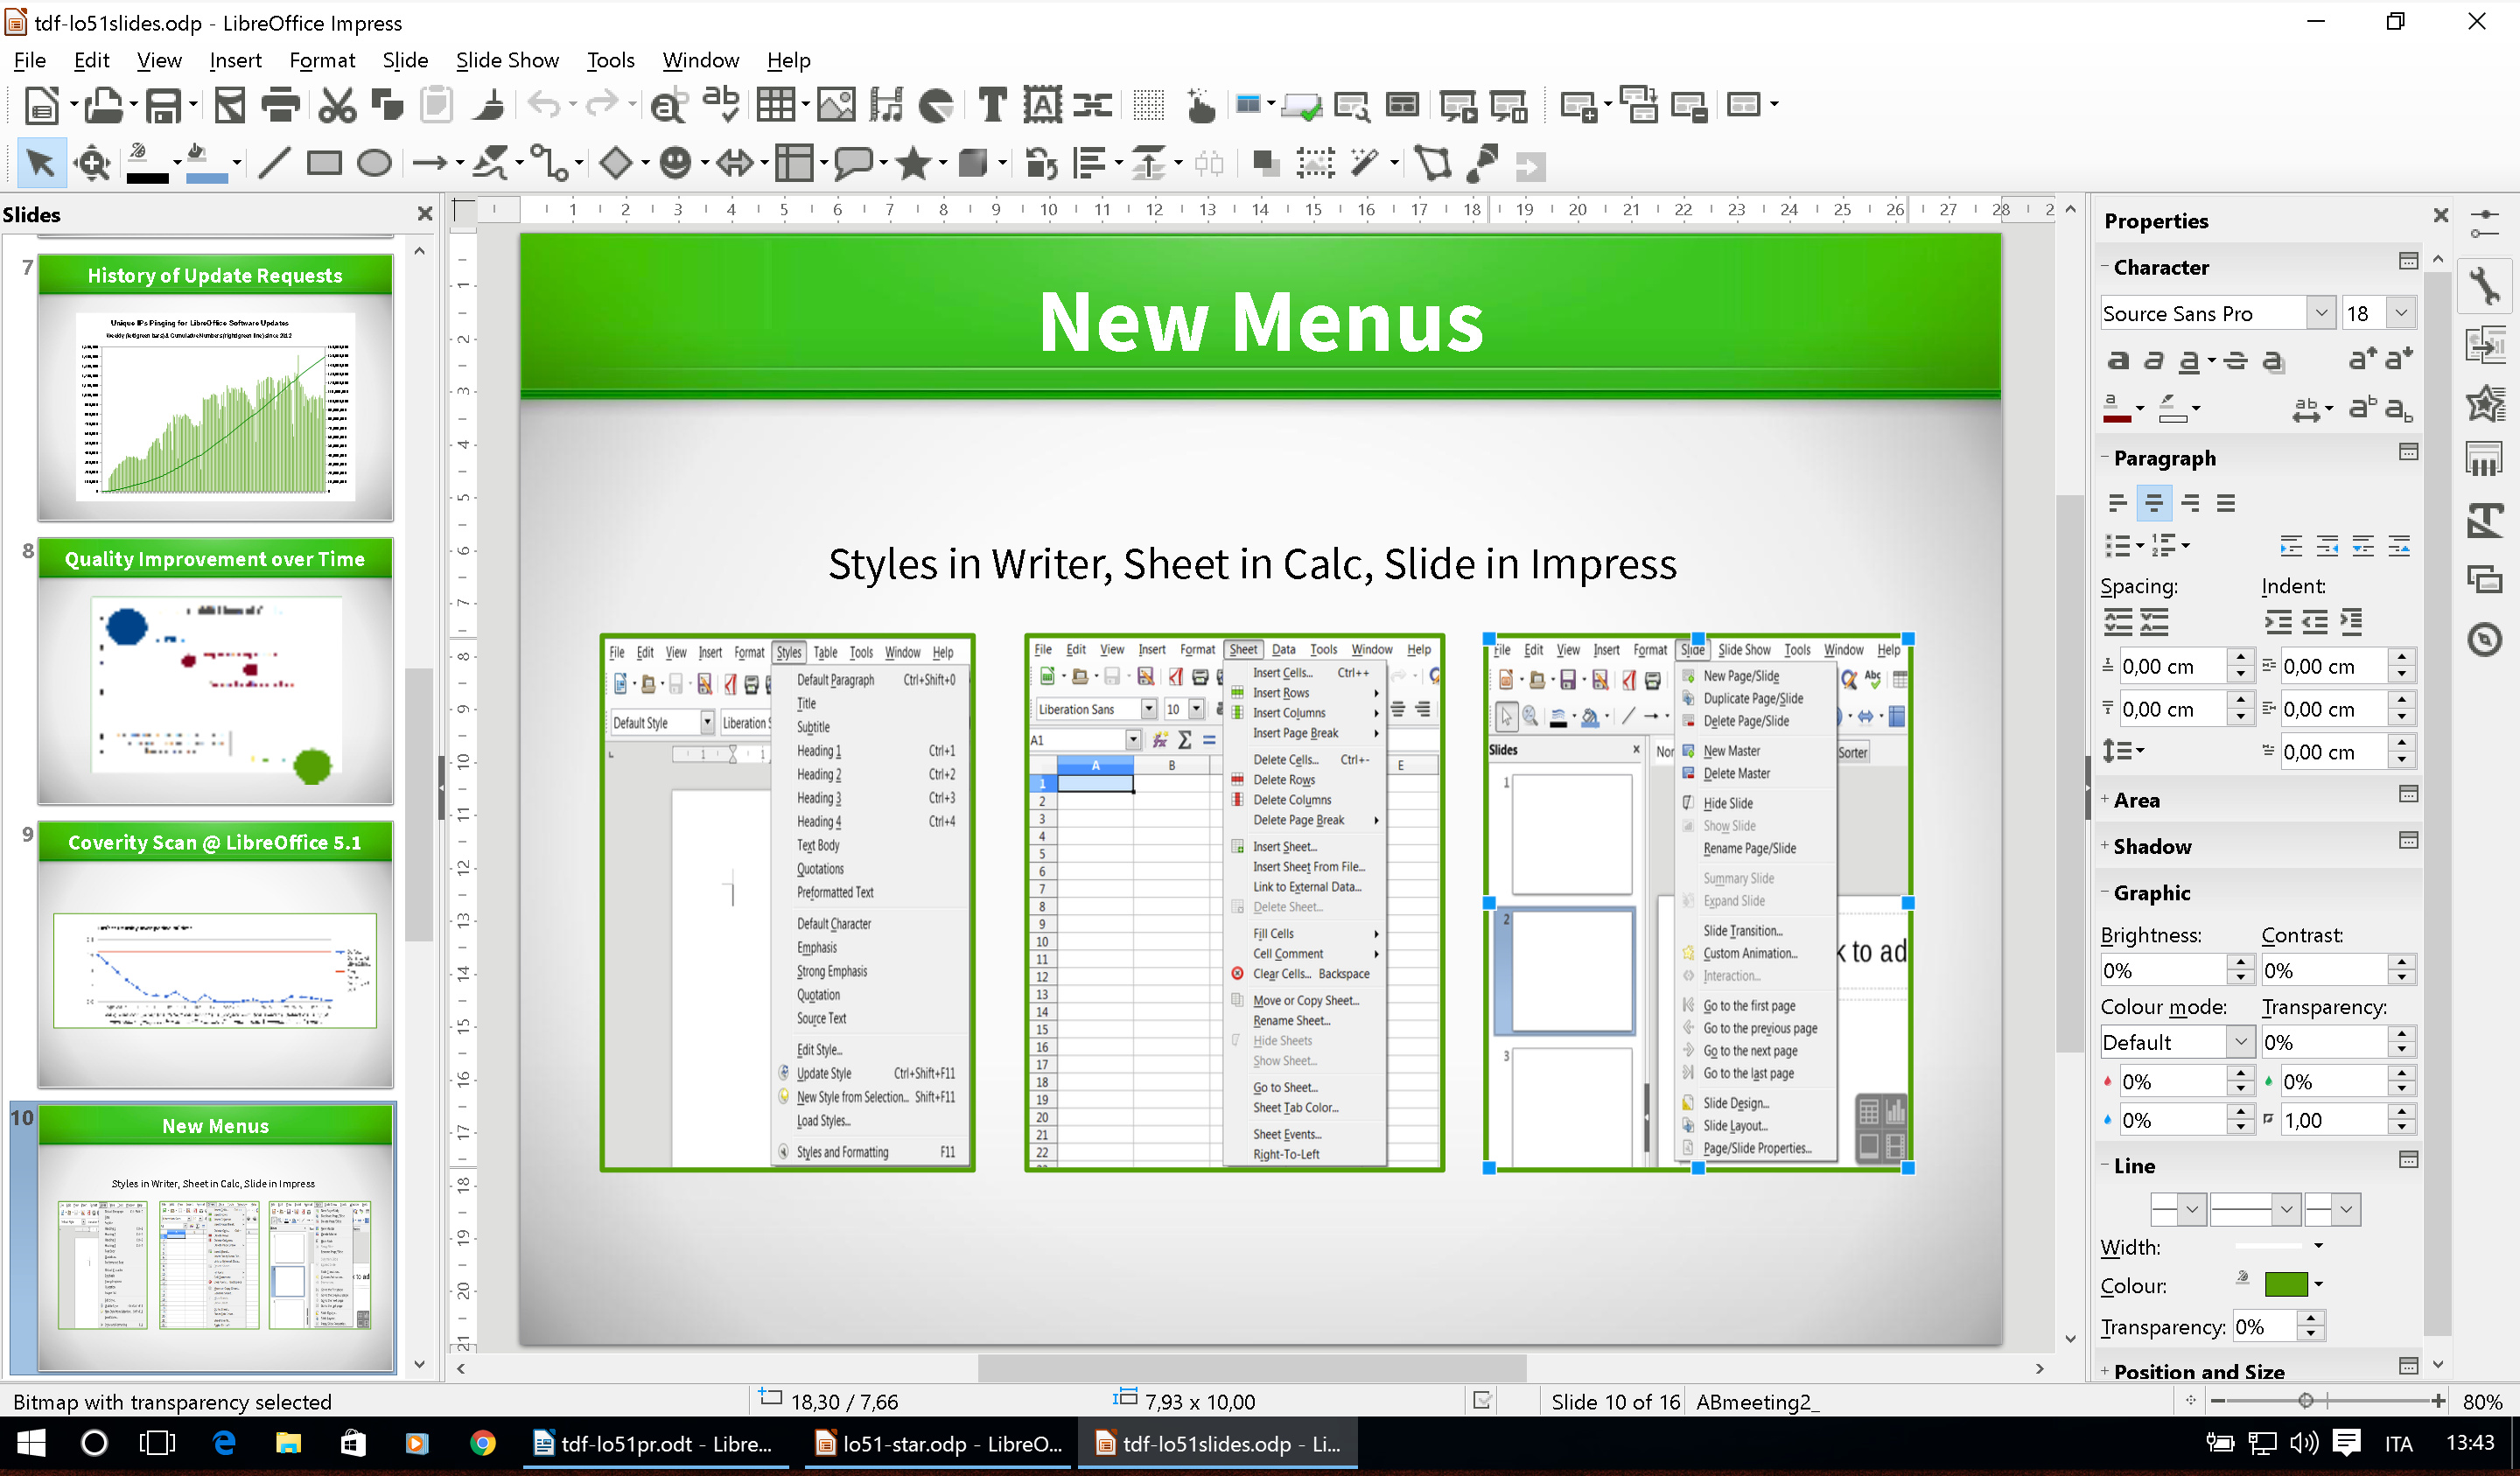 libreoffice 5.2